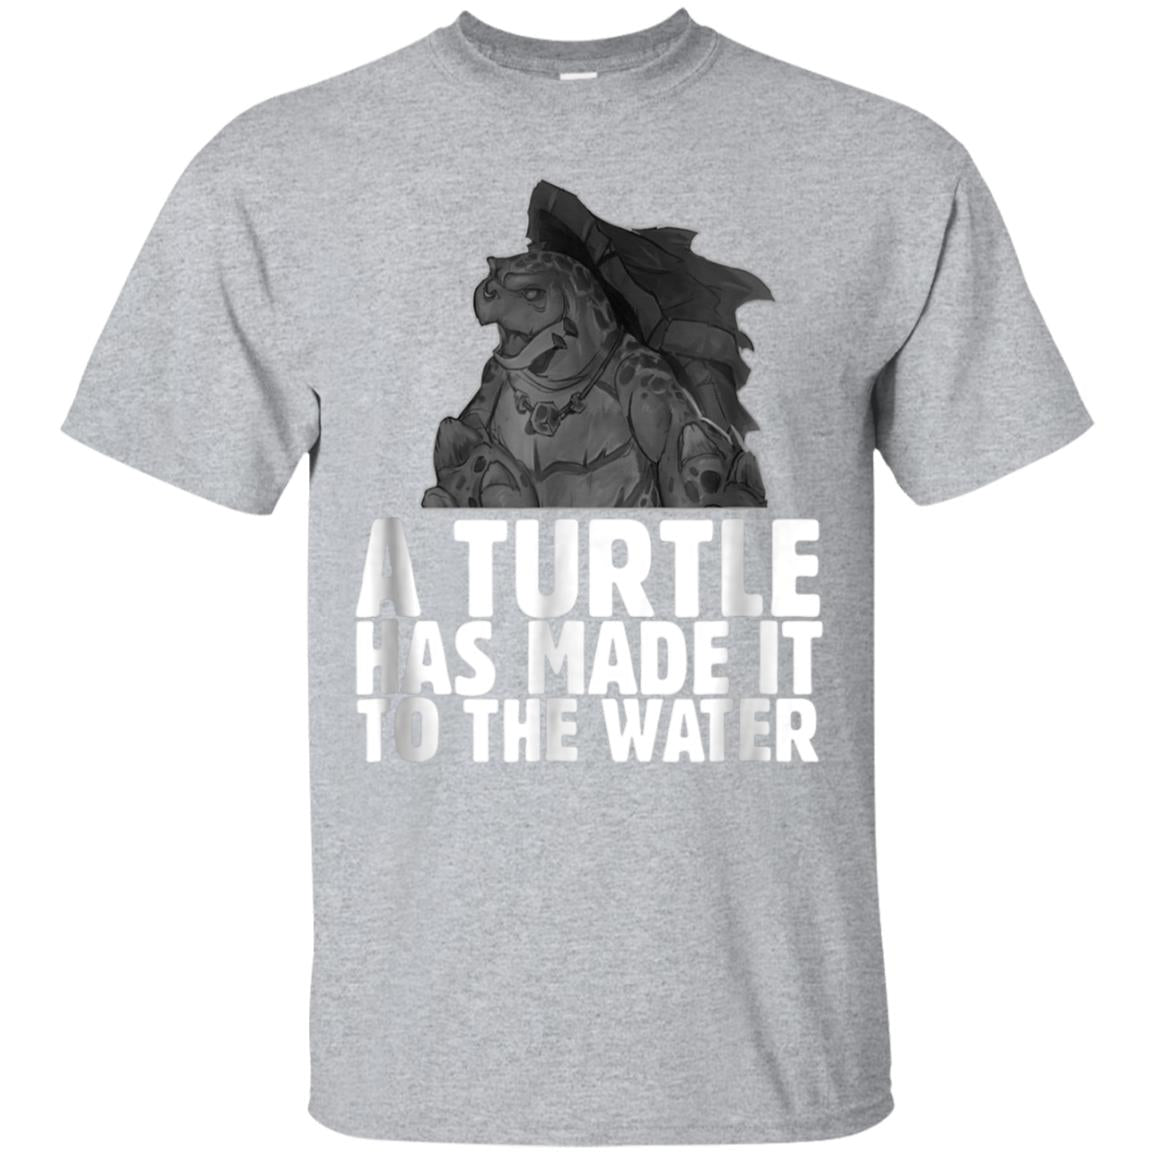 A turtle has made it to the water T-Shirt 99promocode